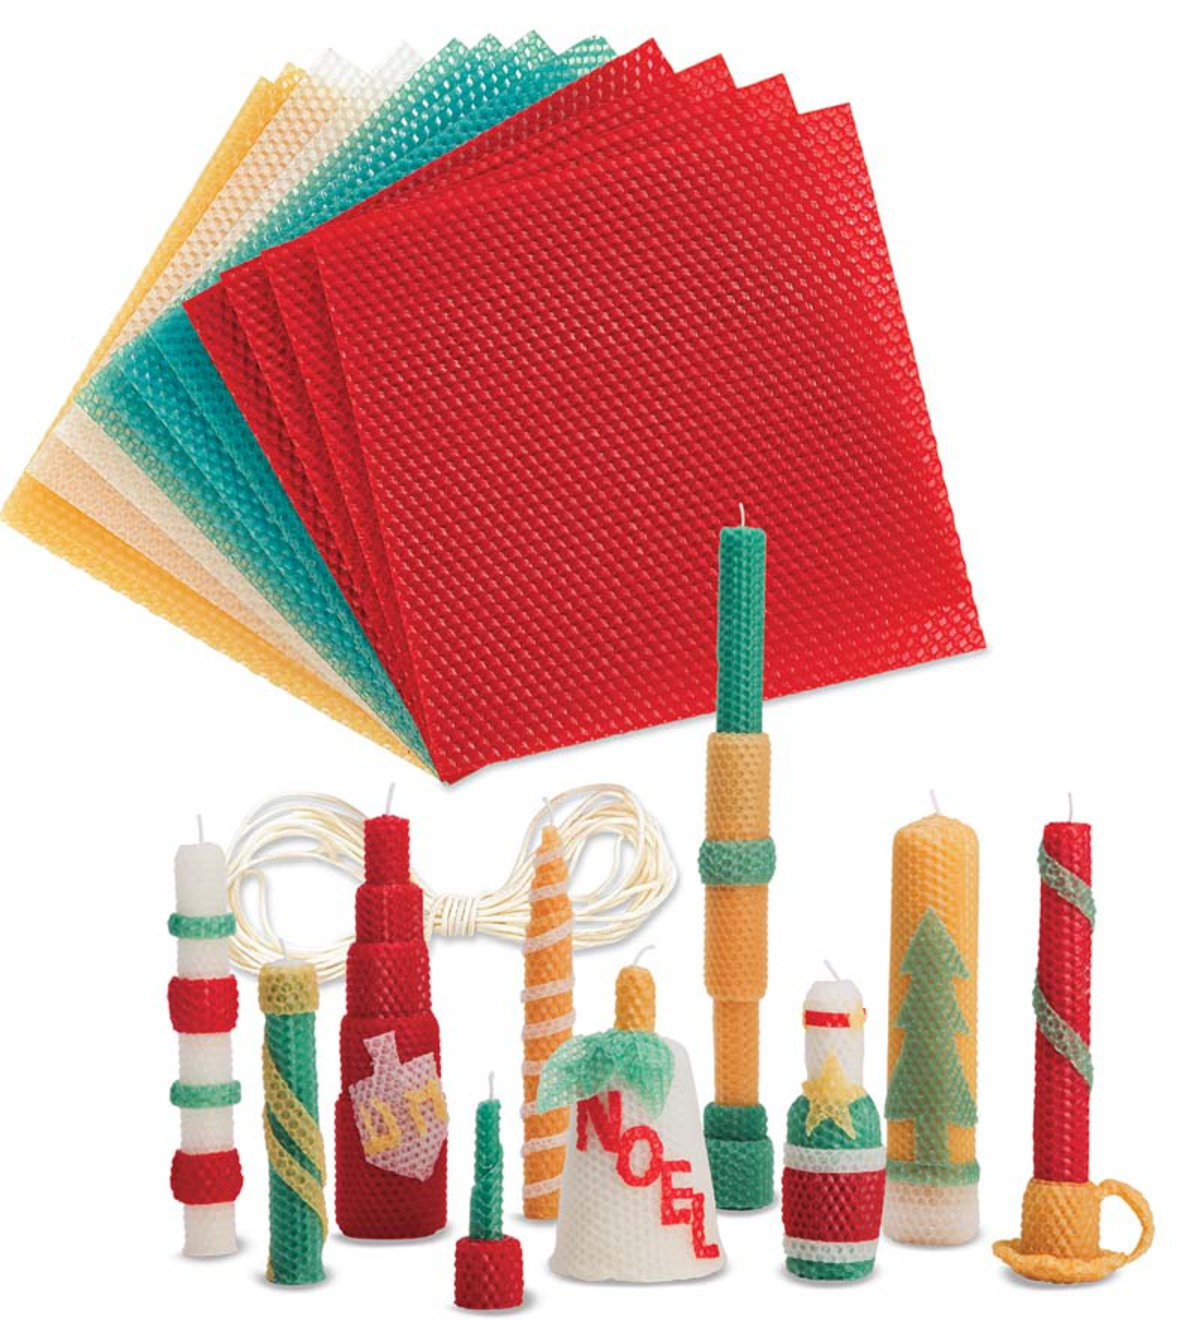 Winter and Holiday-Themed Beeswax Candle Rolling Craft Kits - Holiday